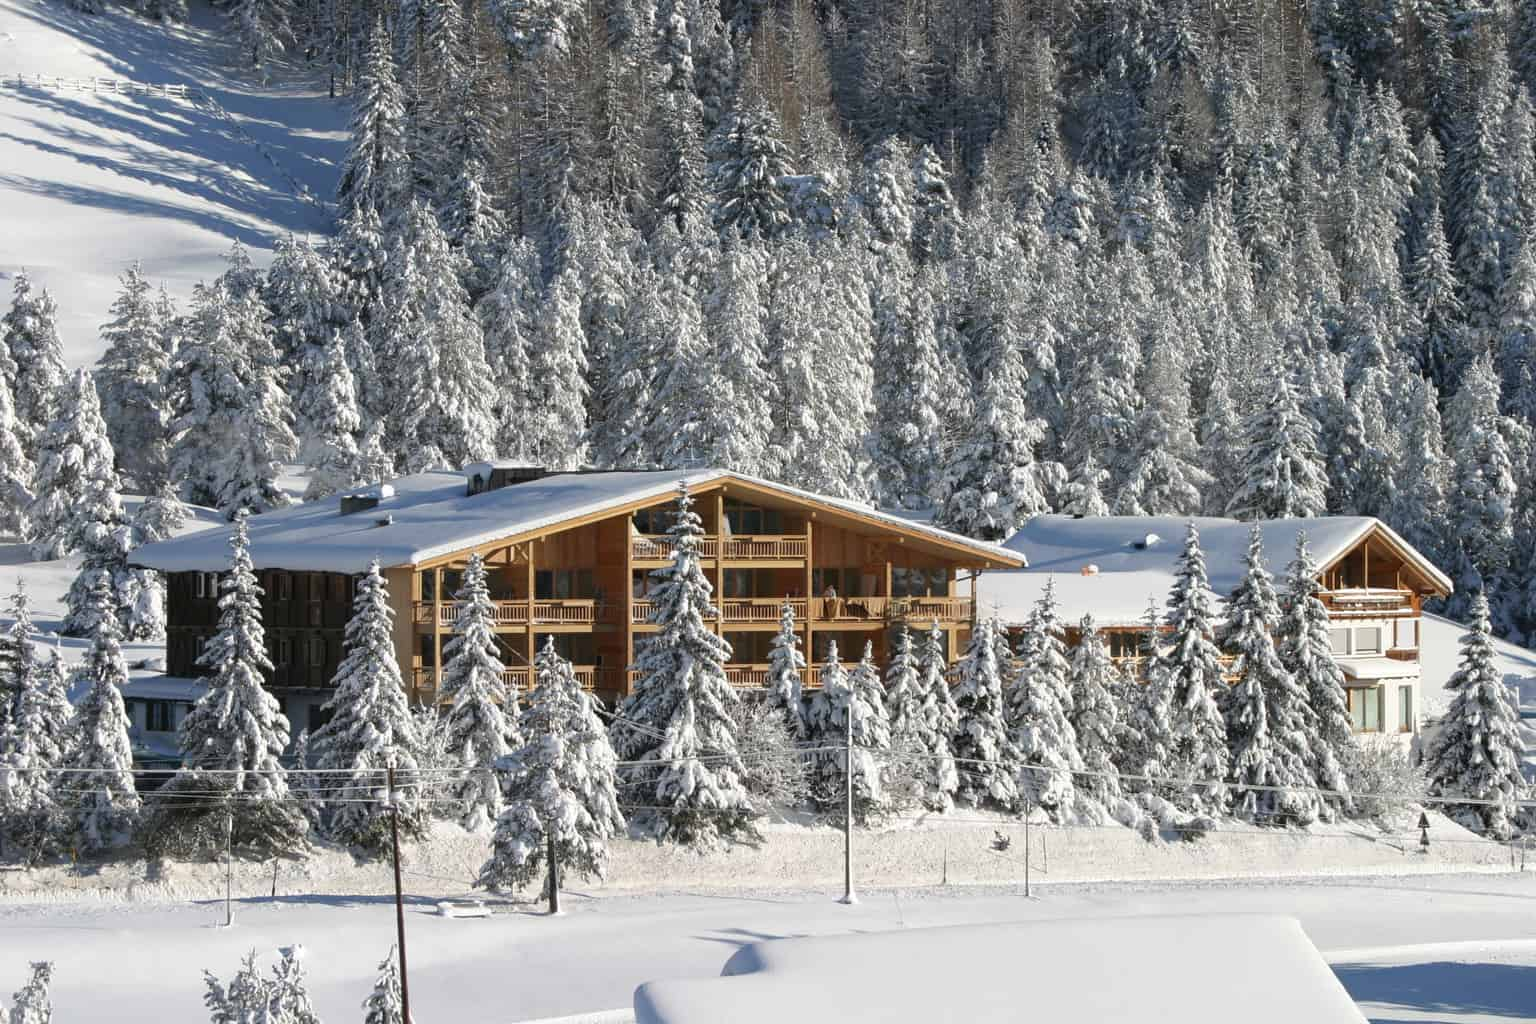 Hotel Gran Paradiso surrounded by snowy trees